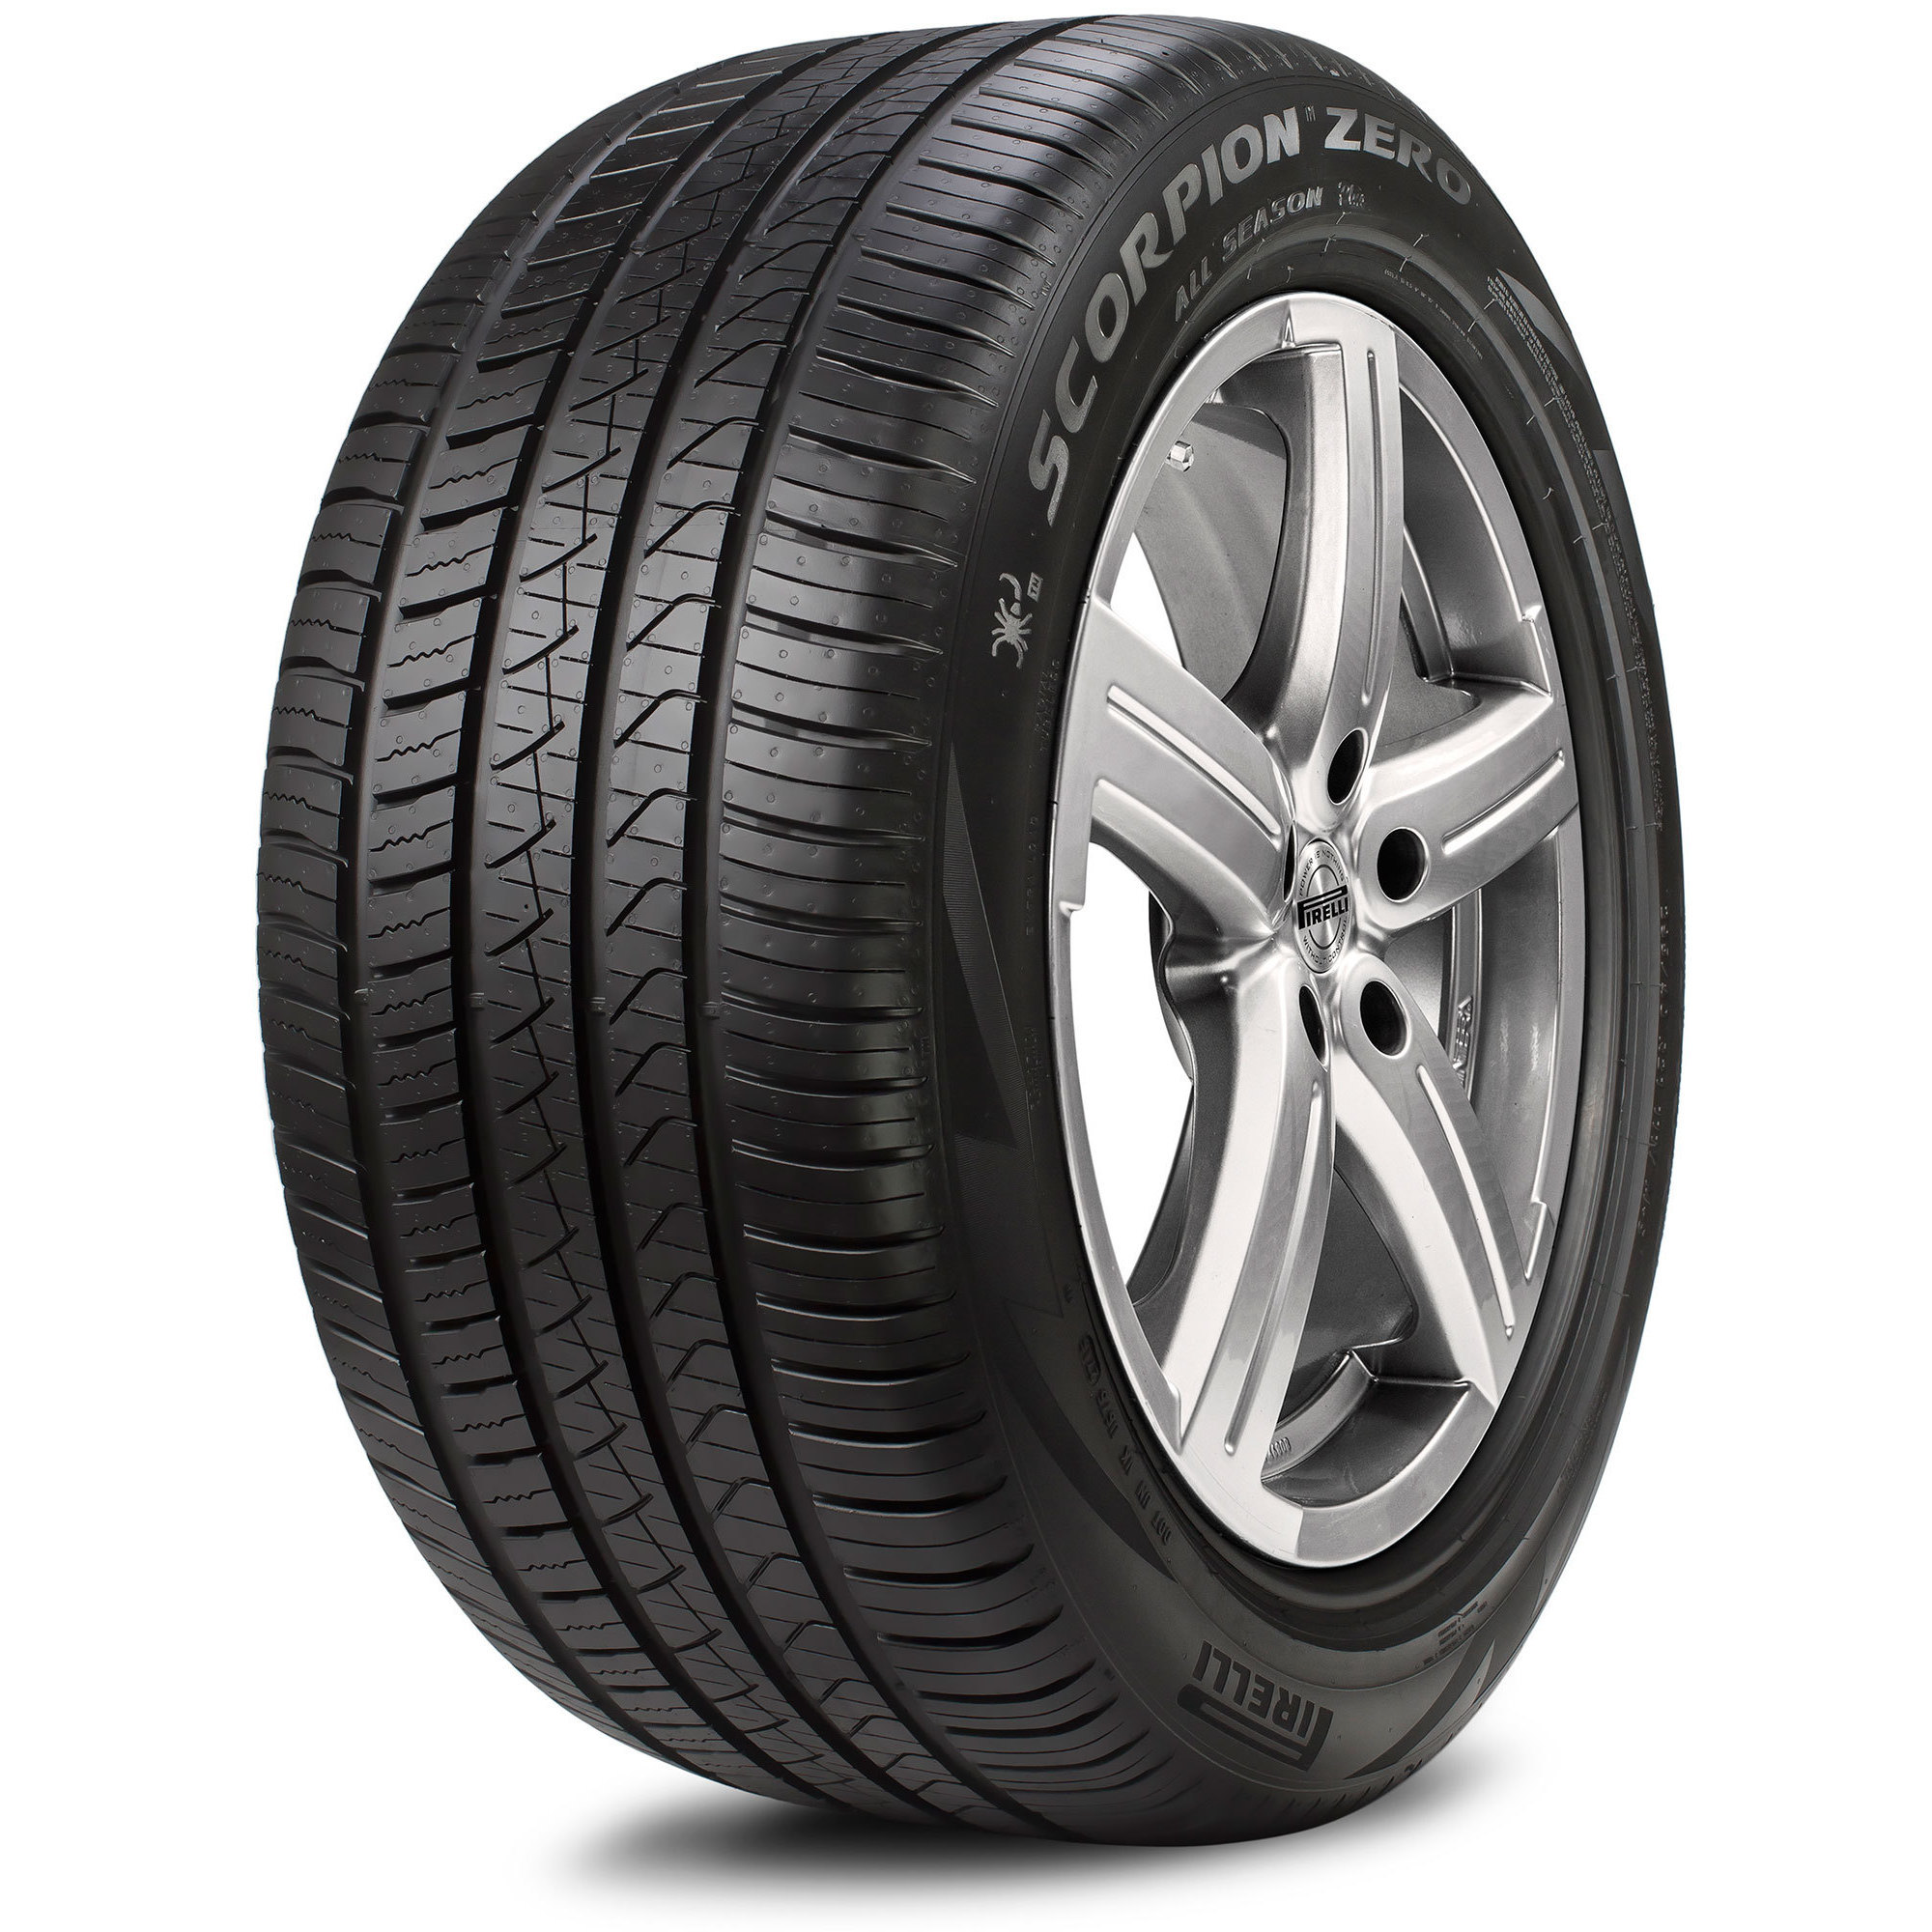 Pirelli Scorpion Zero All Season Plus 295 40r21xl Tirebuyer